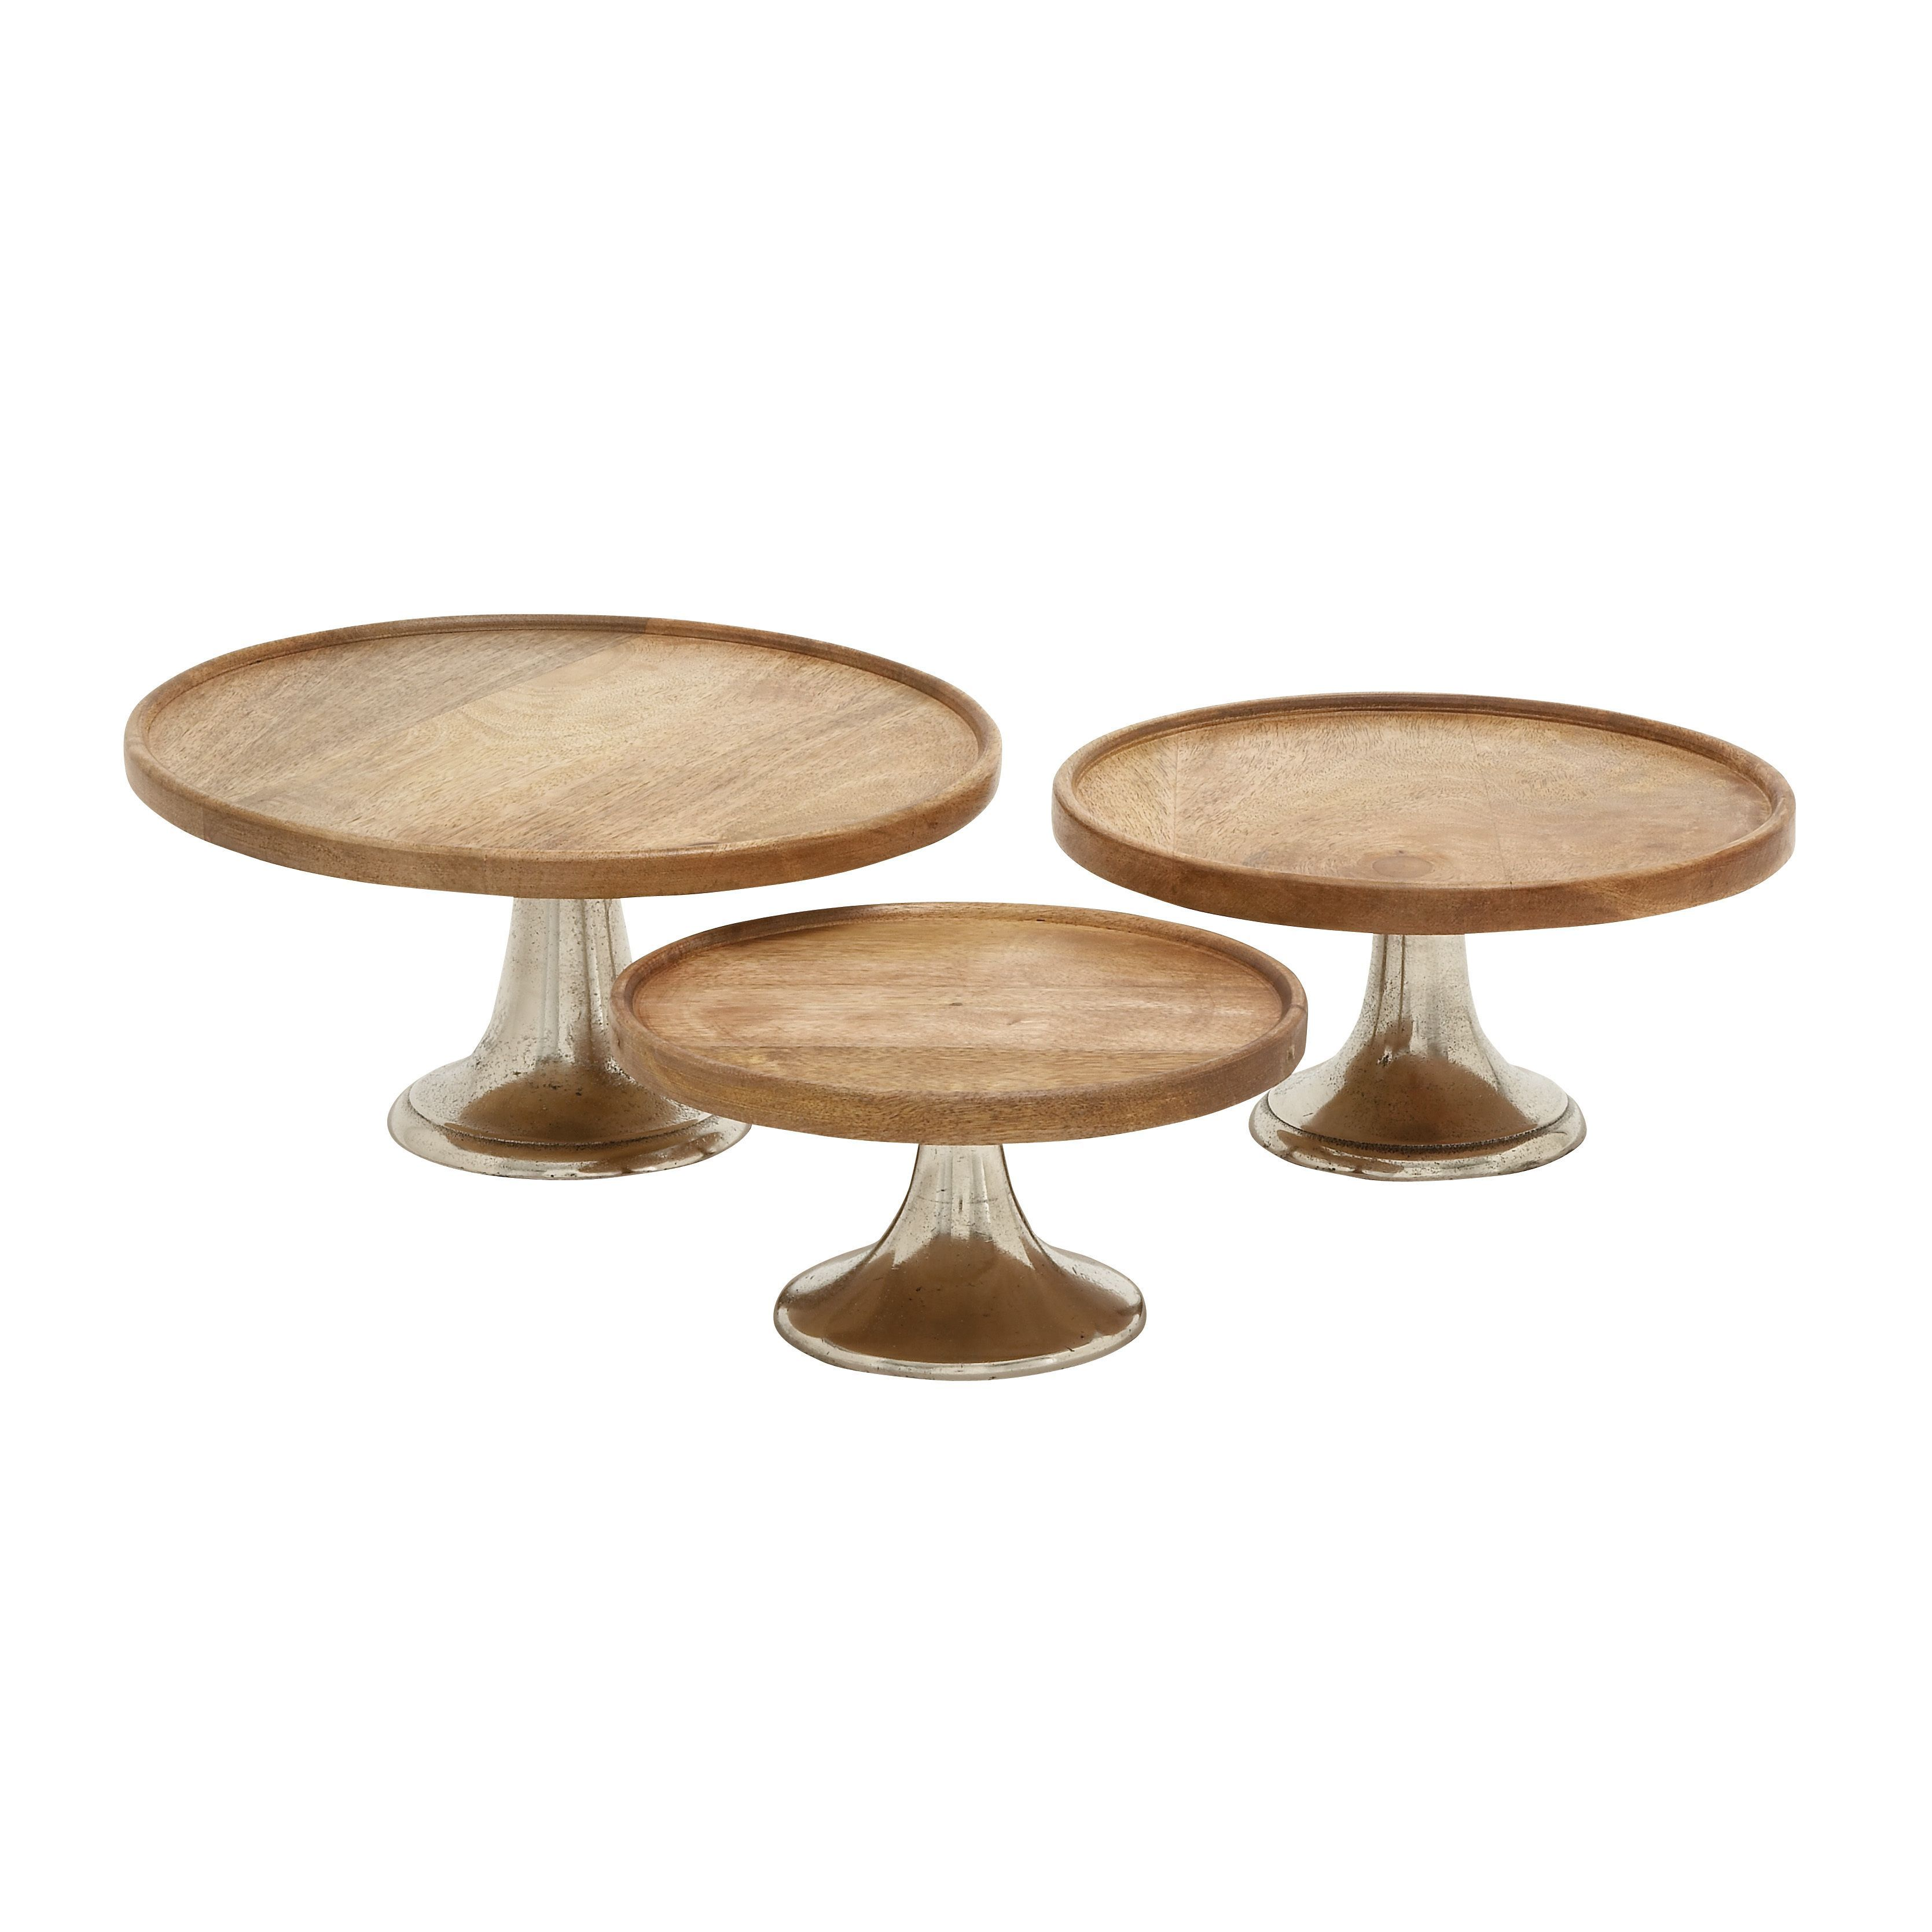 Set Of 3 Modern 10 12 And 14 Inch Pedestal Cake Plates By